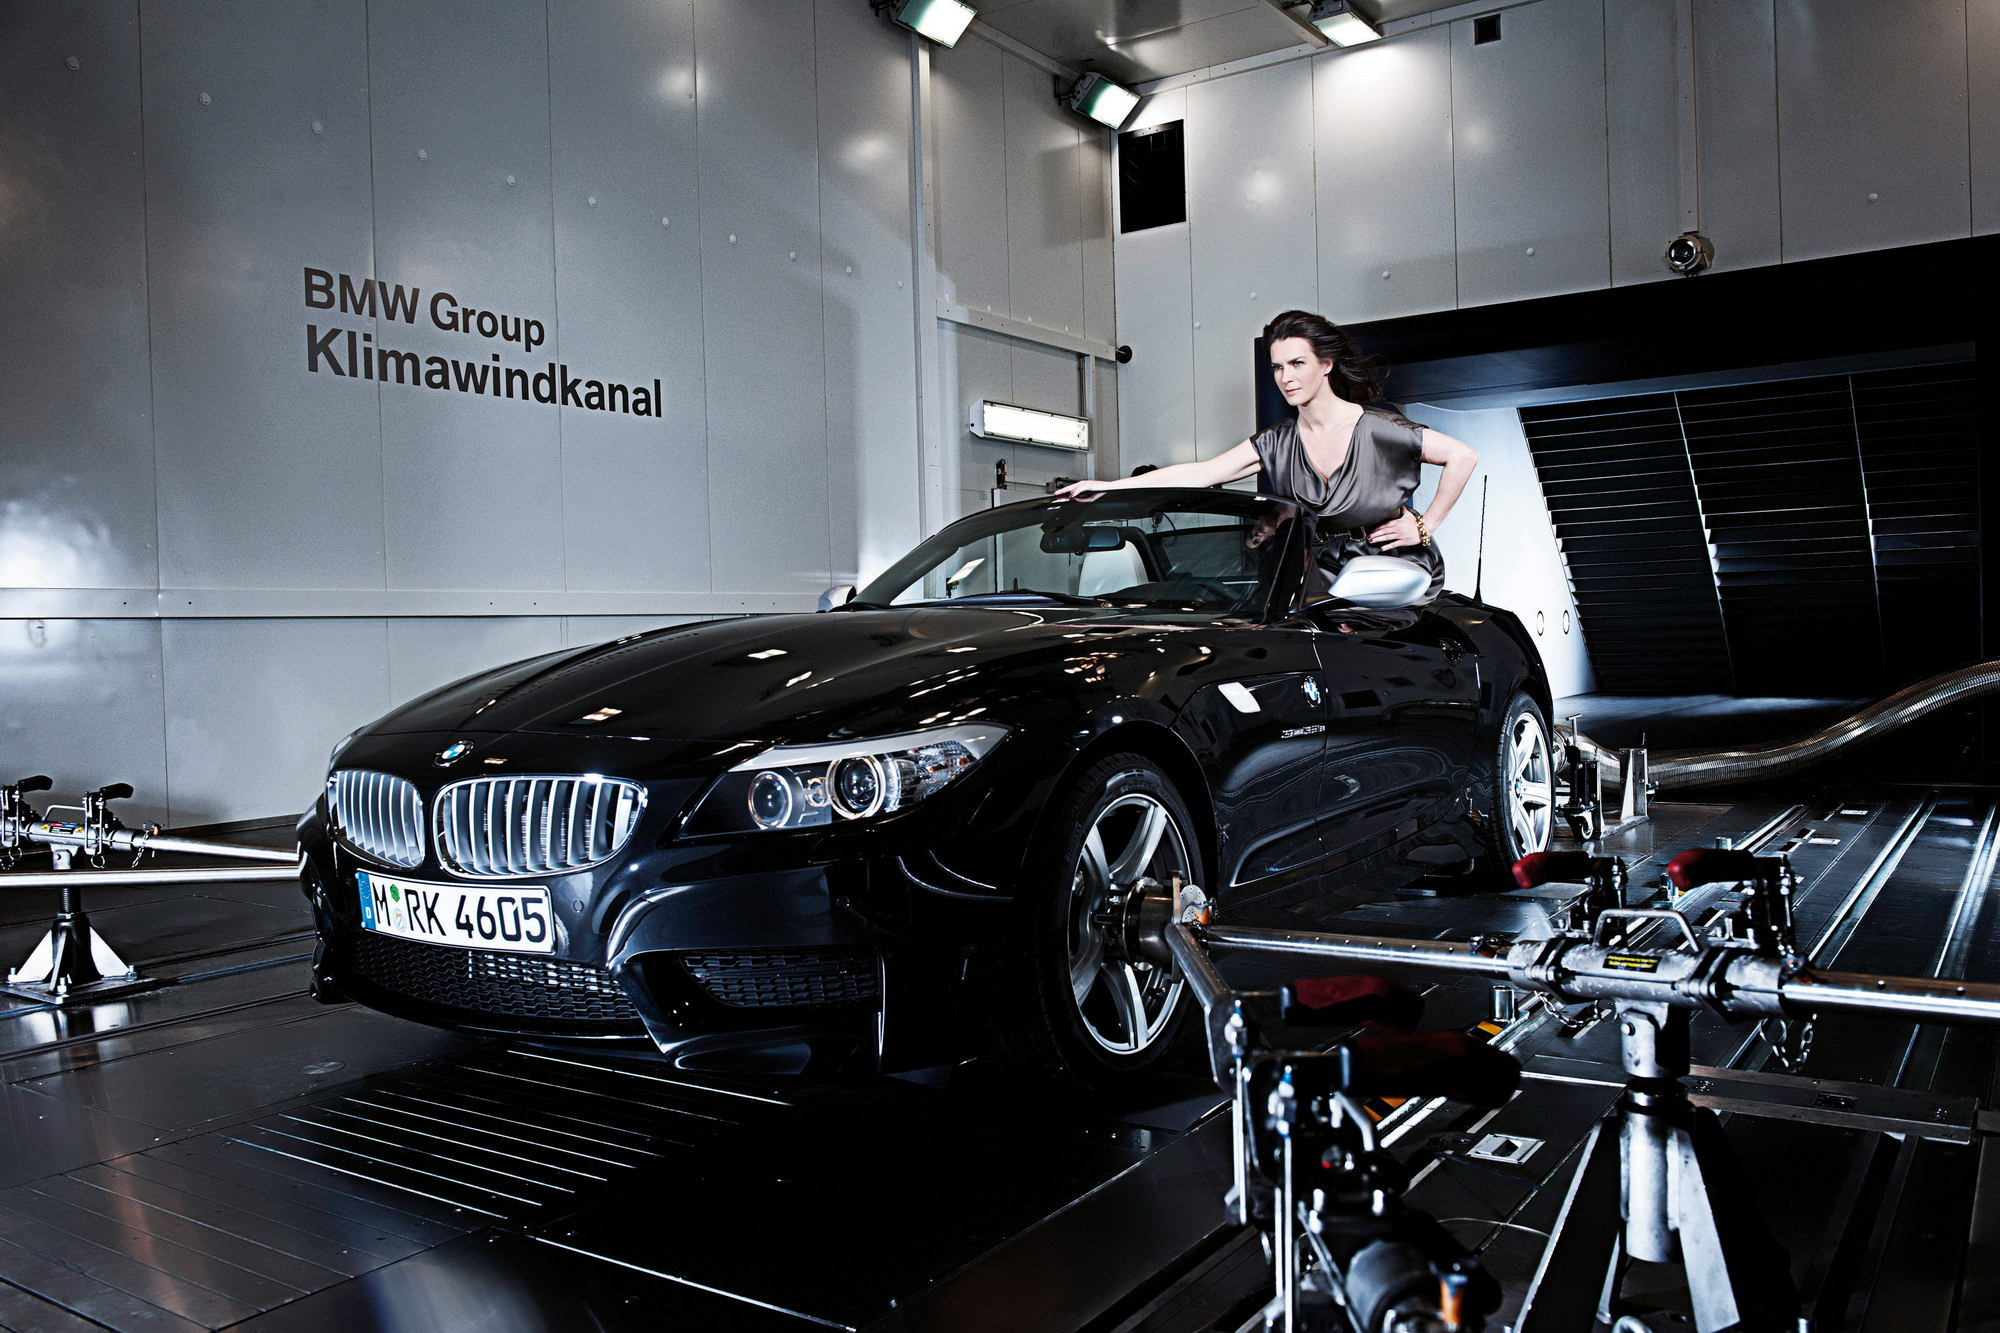 Katarina Witt And The Bmw Z4 At The New Energy And